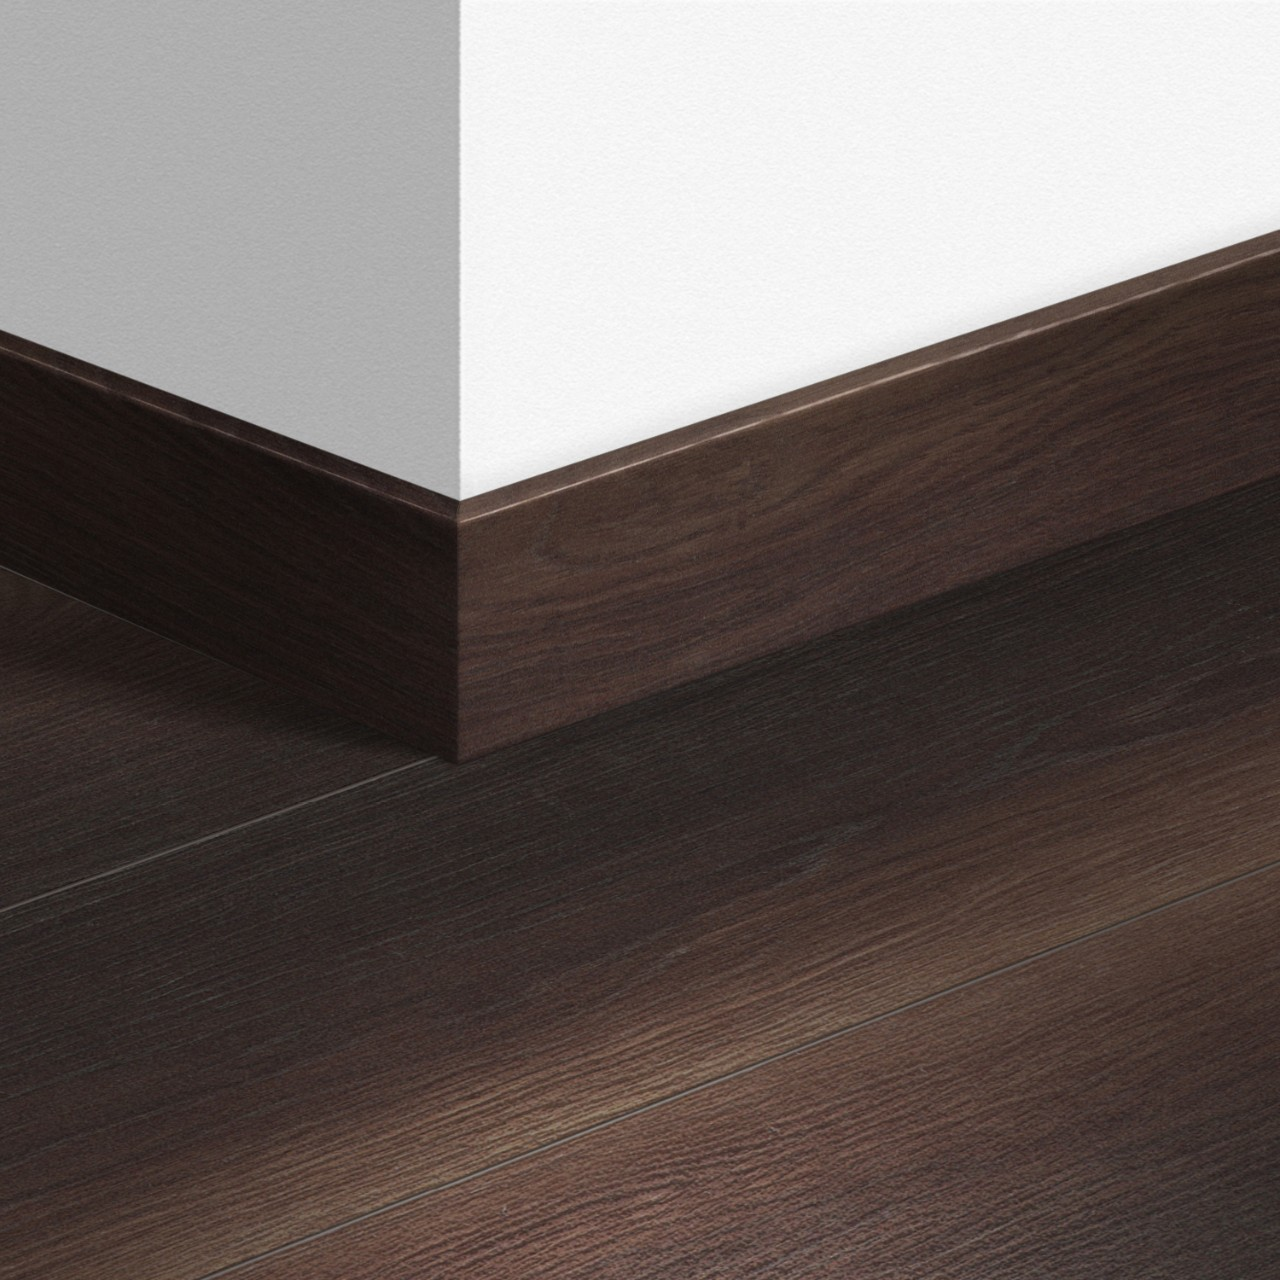 QSPSKR Laminate Accessories Fumed oak dark QSPSKR01540